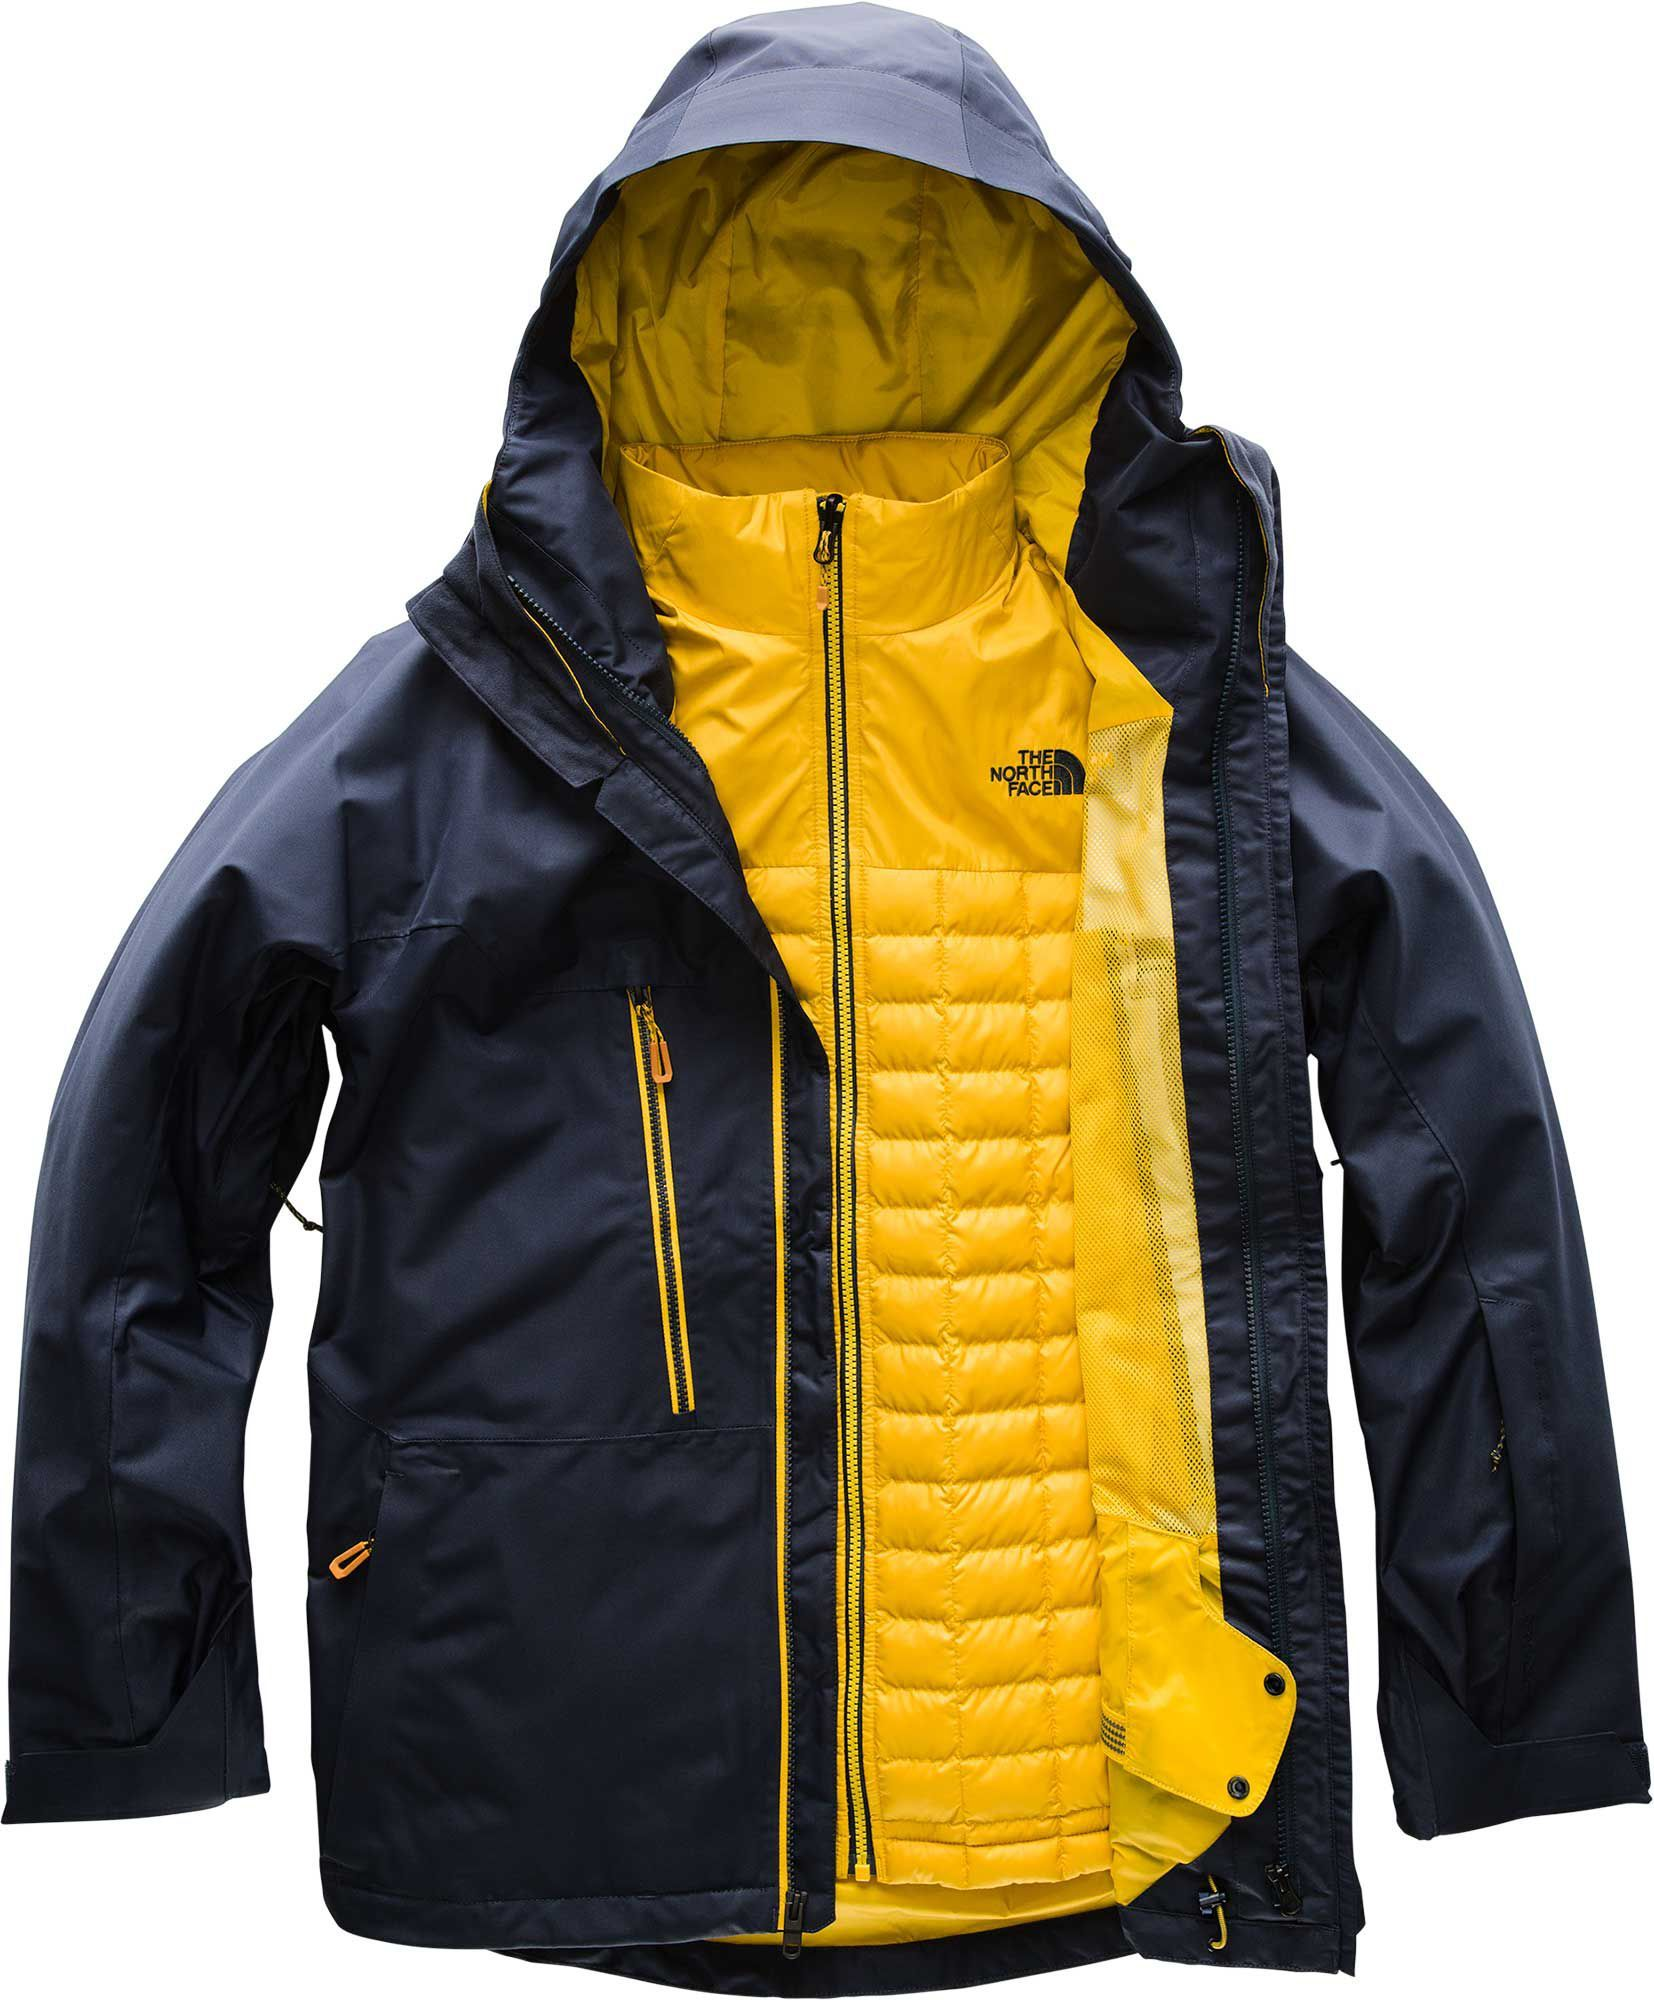 3512d7a034f8 The North Face Men s ThermoBall Snow Triclimate Jacket in 2019 ...